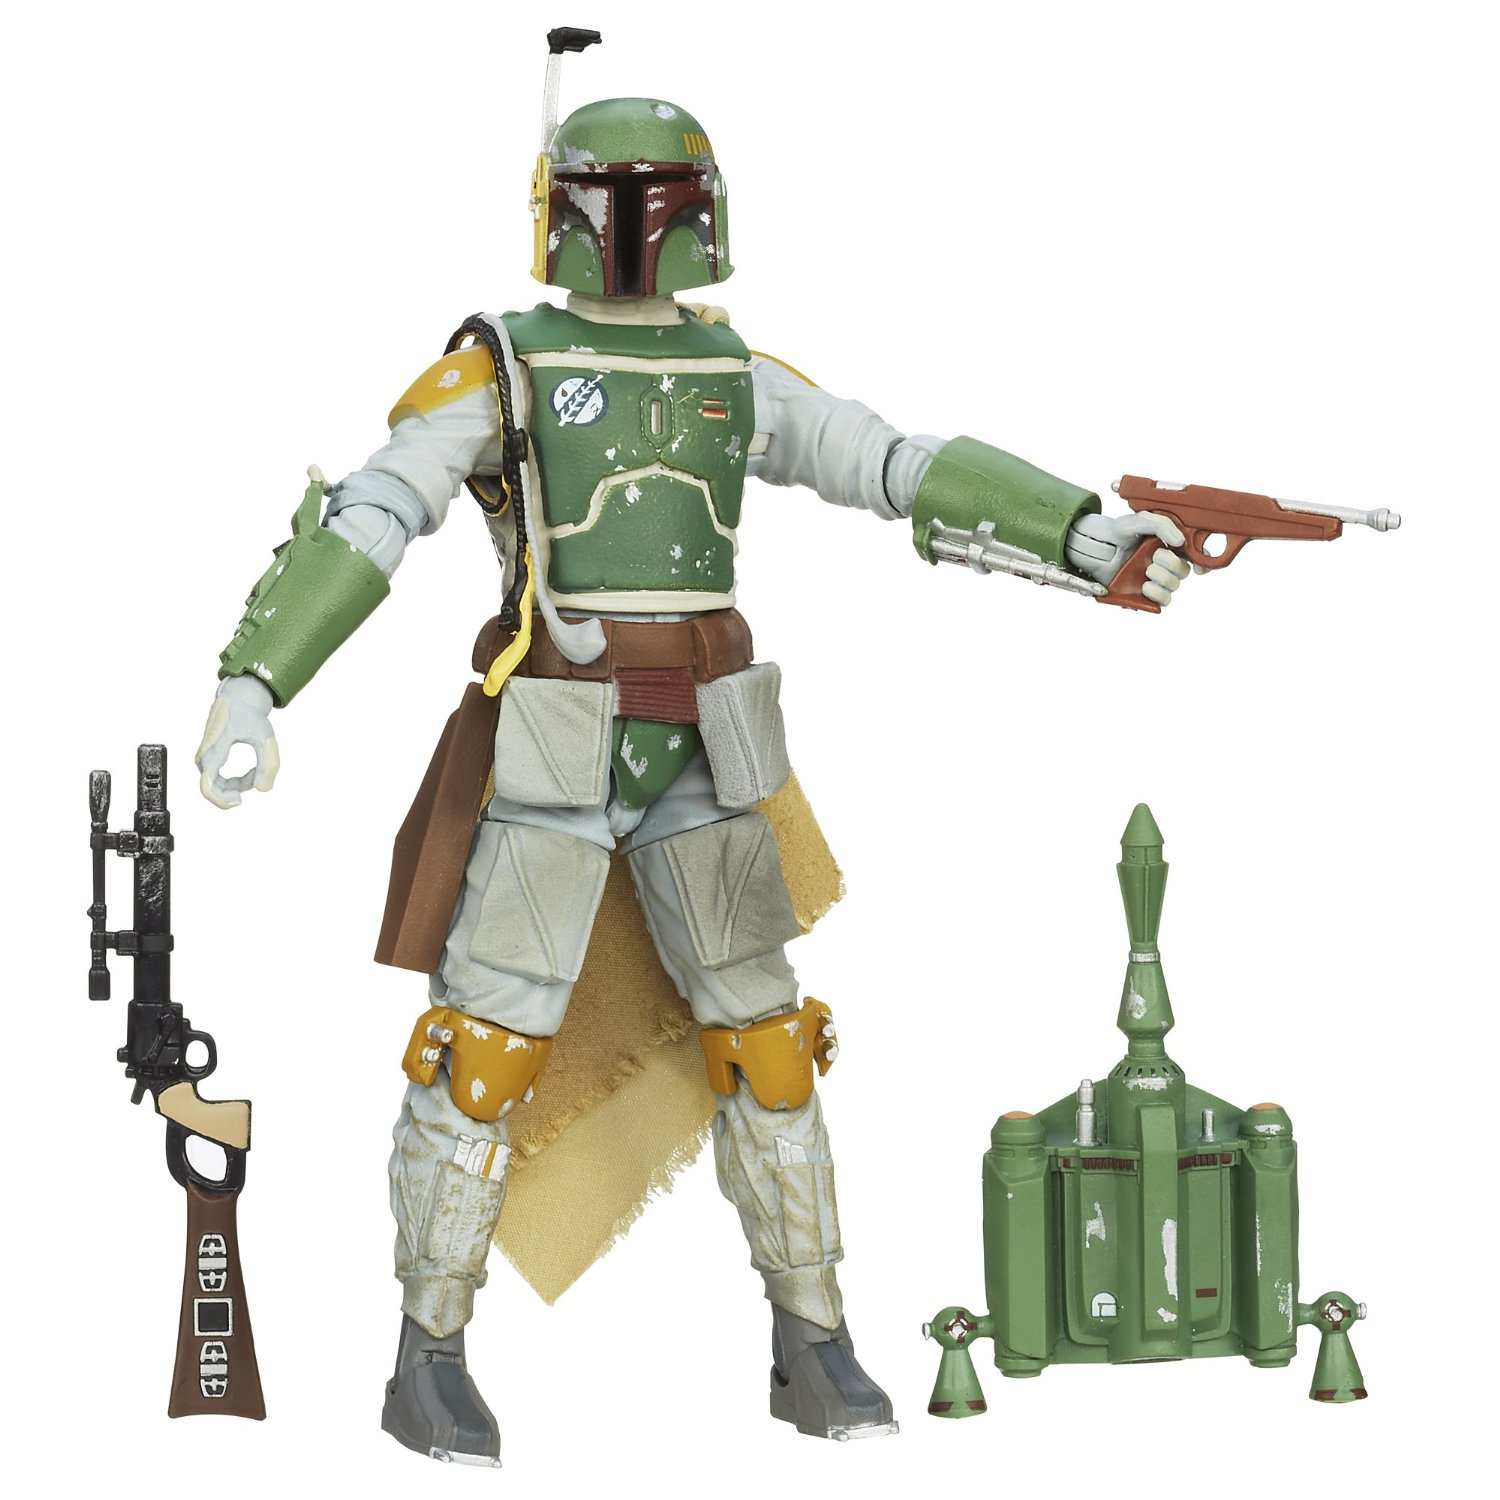 star wars the black series boba fett figure 6 inches. Black Bedroom Furniture Sets. Home Design Ideas